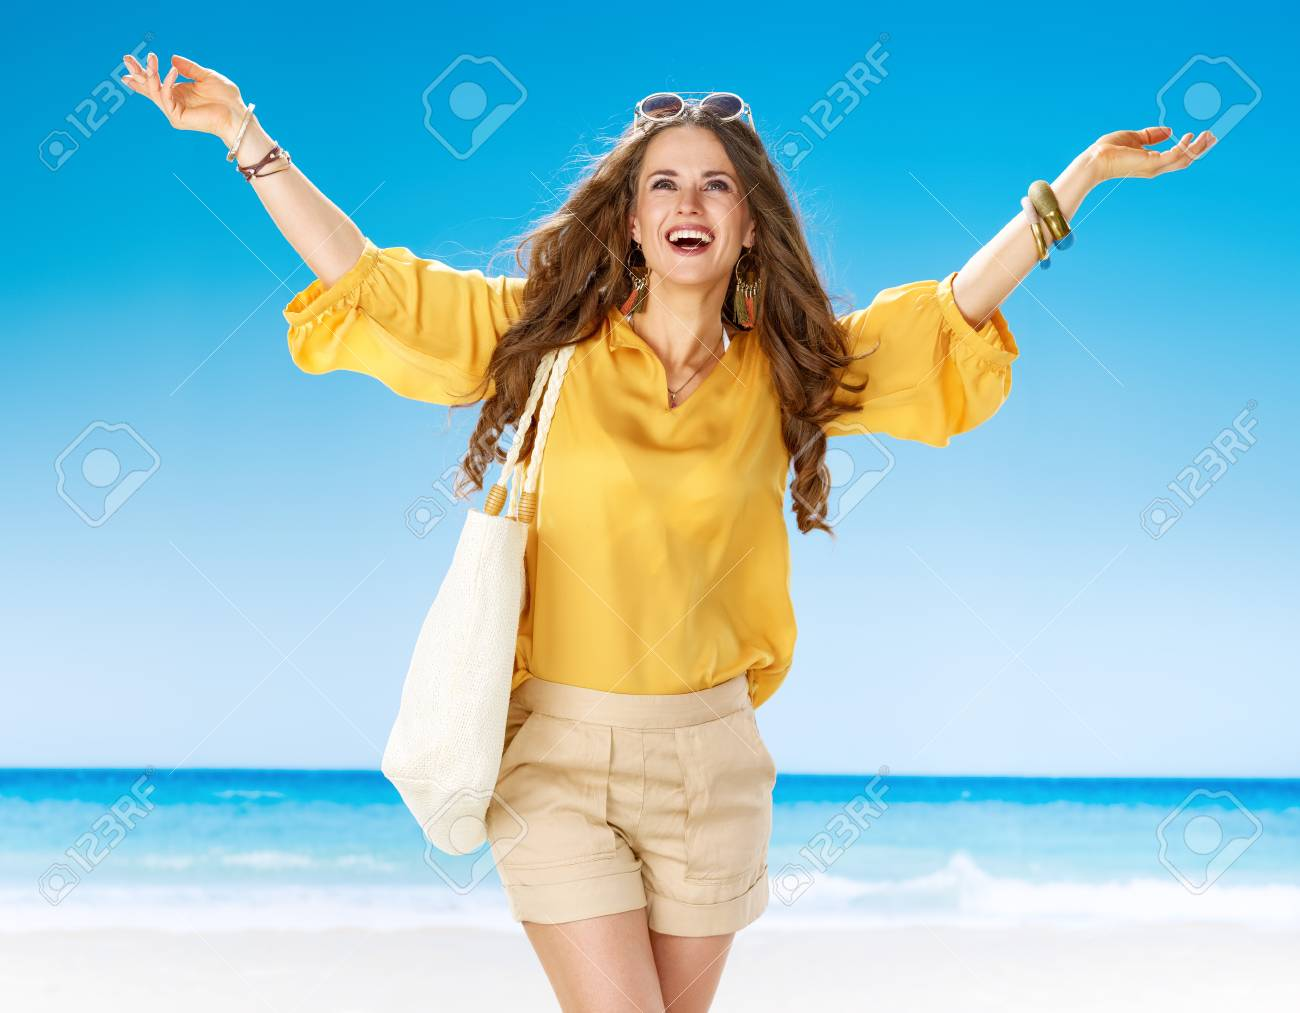 604356a6f28 Perfect summer. happy young woman in shorts and yellow blouse with white  beach bag on